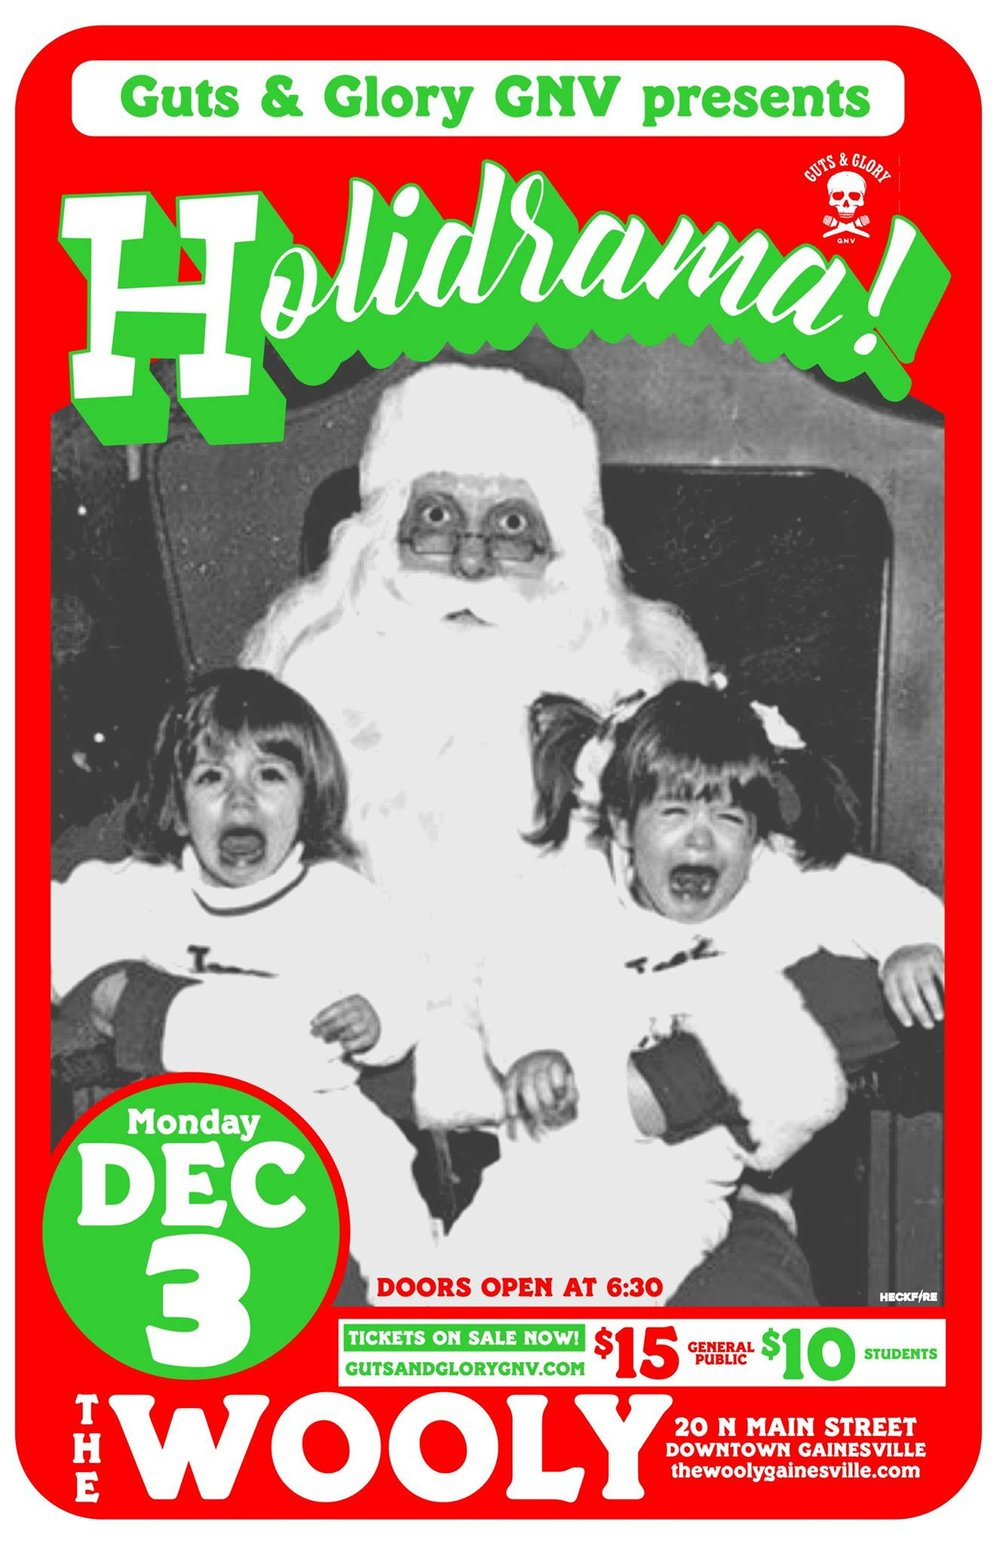 Guts & Glory GNV is back to bring you a night of the holiday spirit from - uhhh, maybe a different angle. We've all got those strange holiday stories that involve gifts gone wrong, the black sheep of the family, or maybe the turkey that burned in the oven....again. Tonight will be a celebration of those tinseled tales, and we'd love to have you along for the ride!